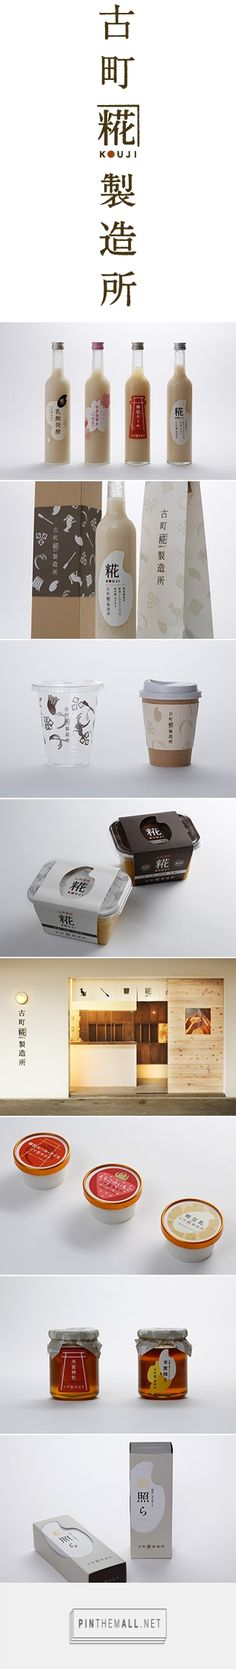 Furumachi-Kouji via AWATSUJI design curated by Packaging Diva PD. Such pretty packaging.                                                                                                                                                                                 もっと見る